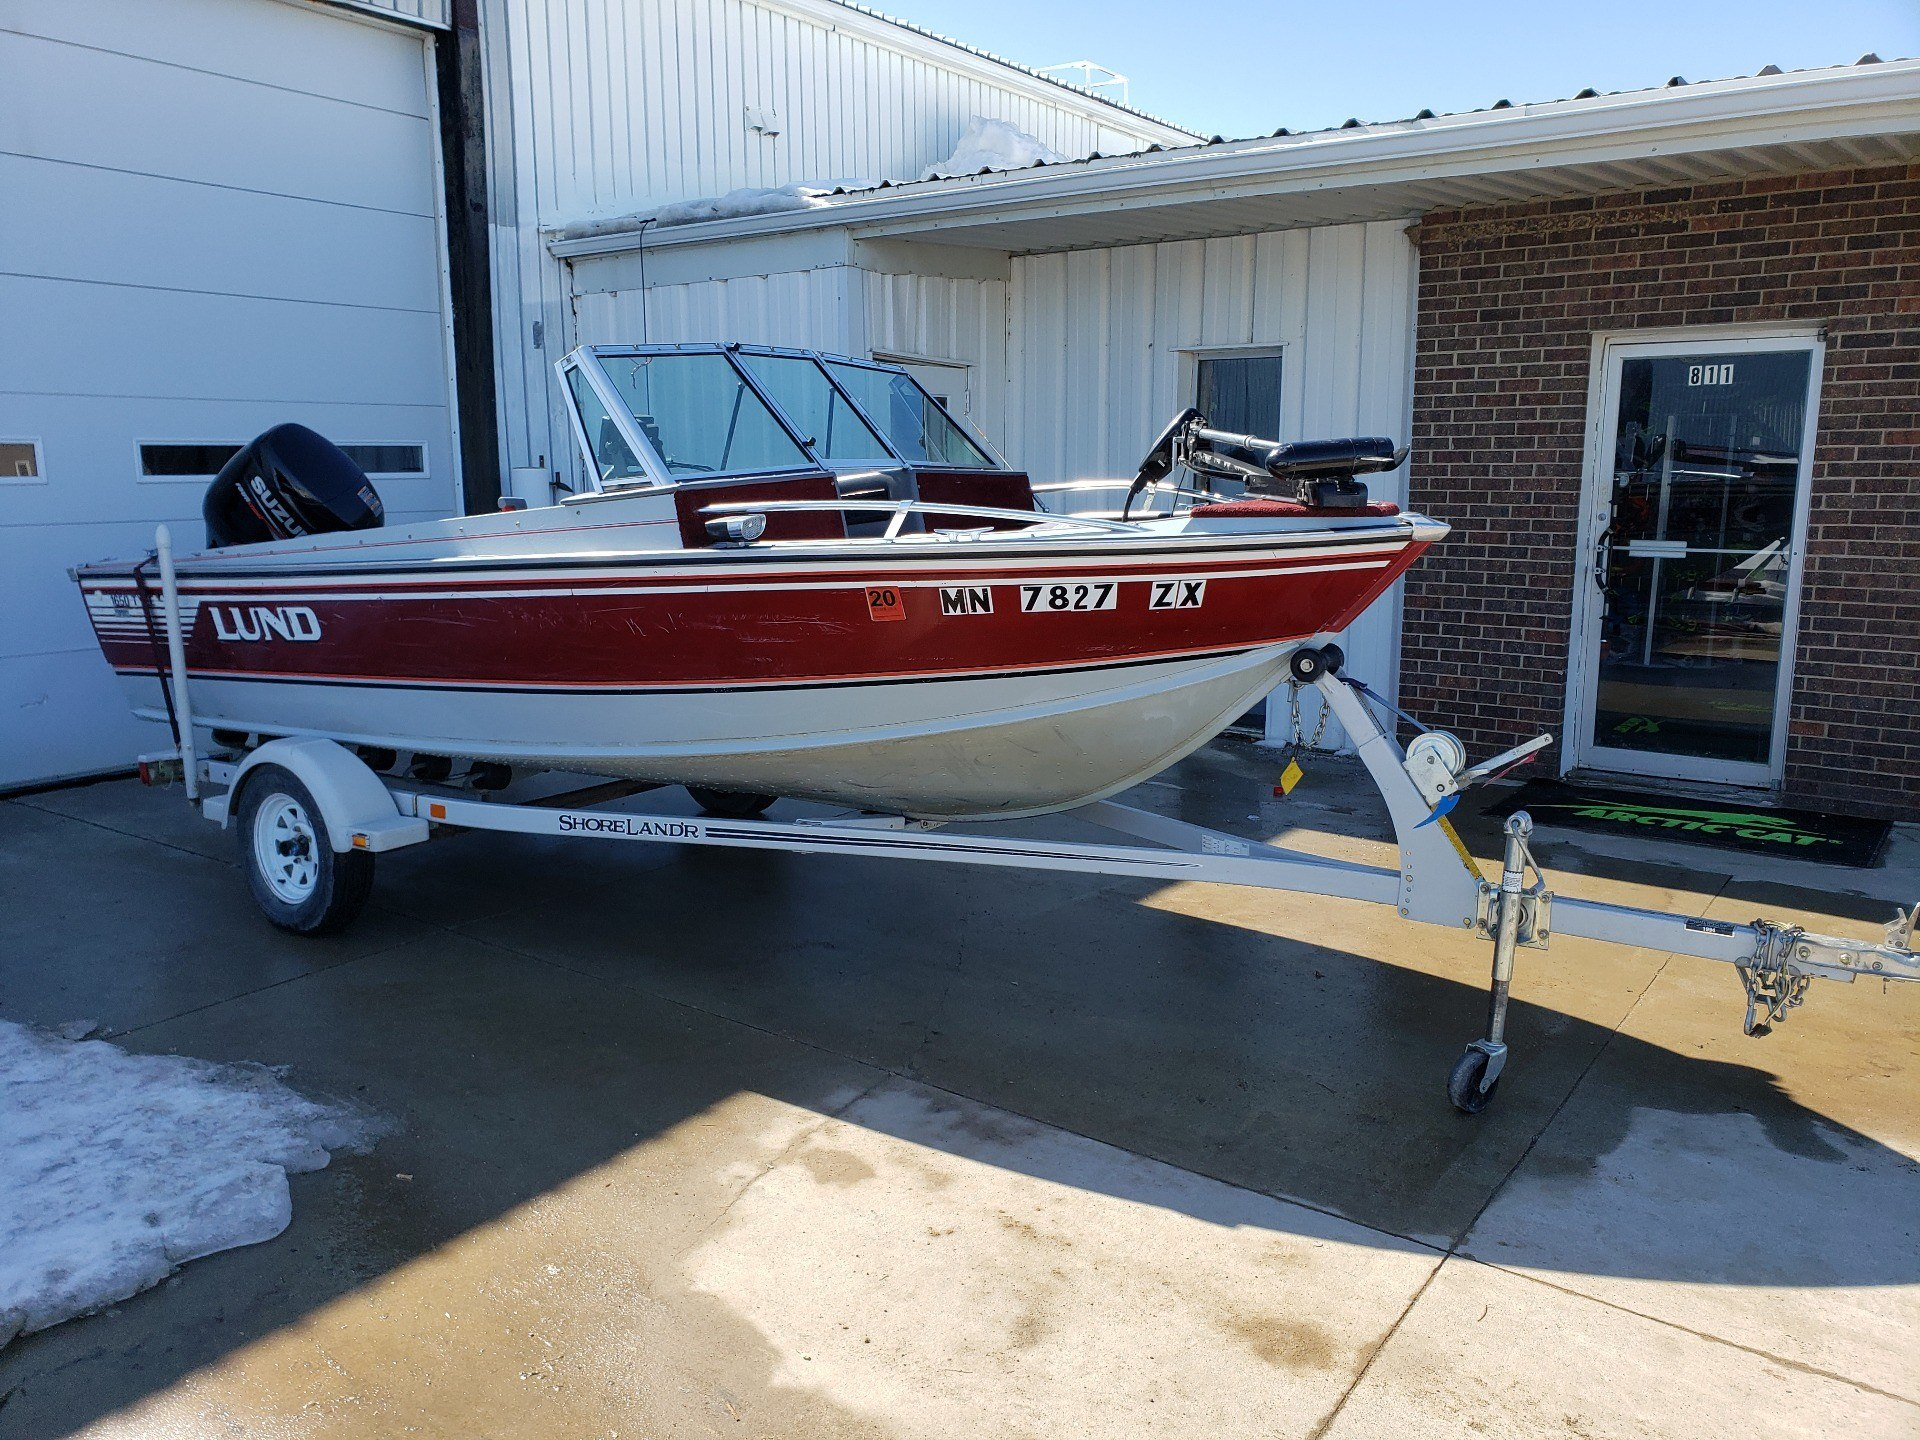 1989 TYEE For Sale Ortonville, MN : 93671